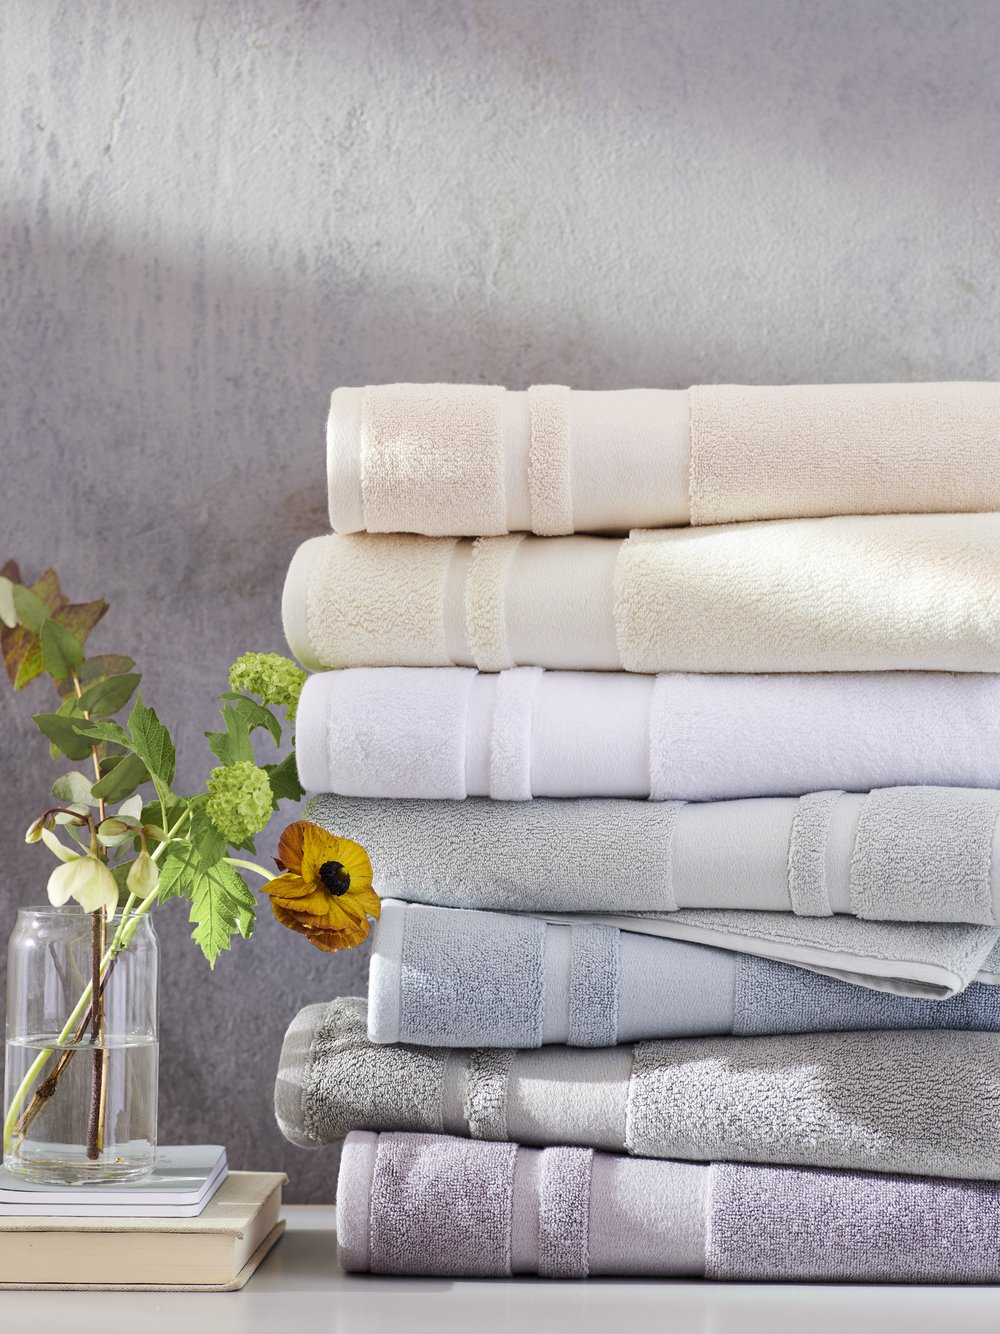 +1808BLM_In_Laws_Ralph_Lauren_Towels205.jpg